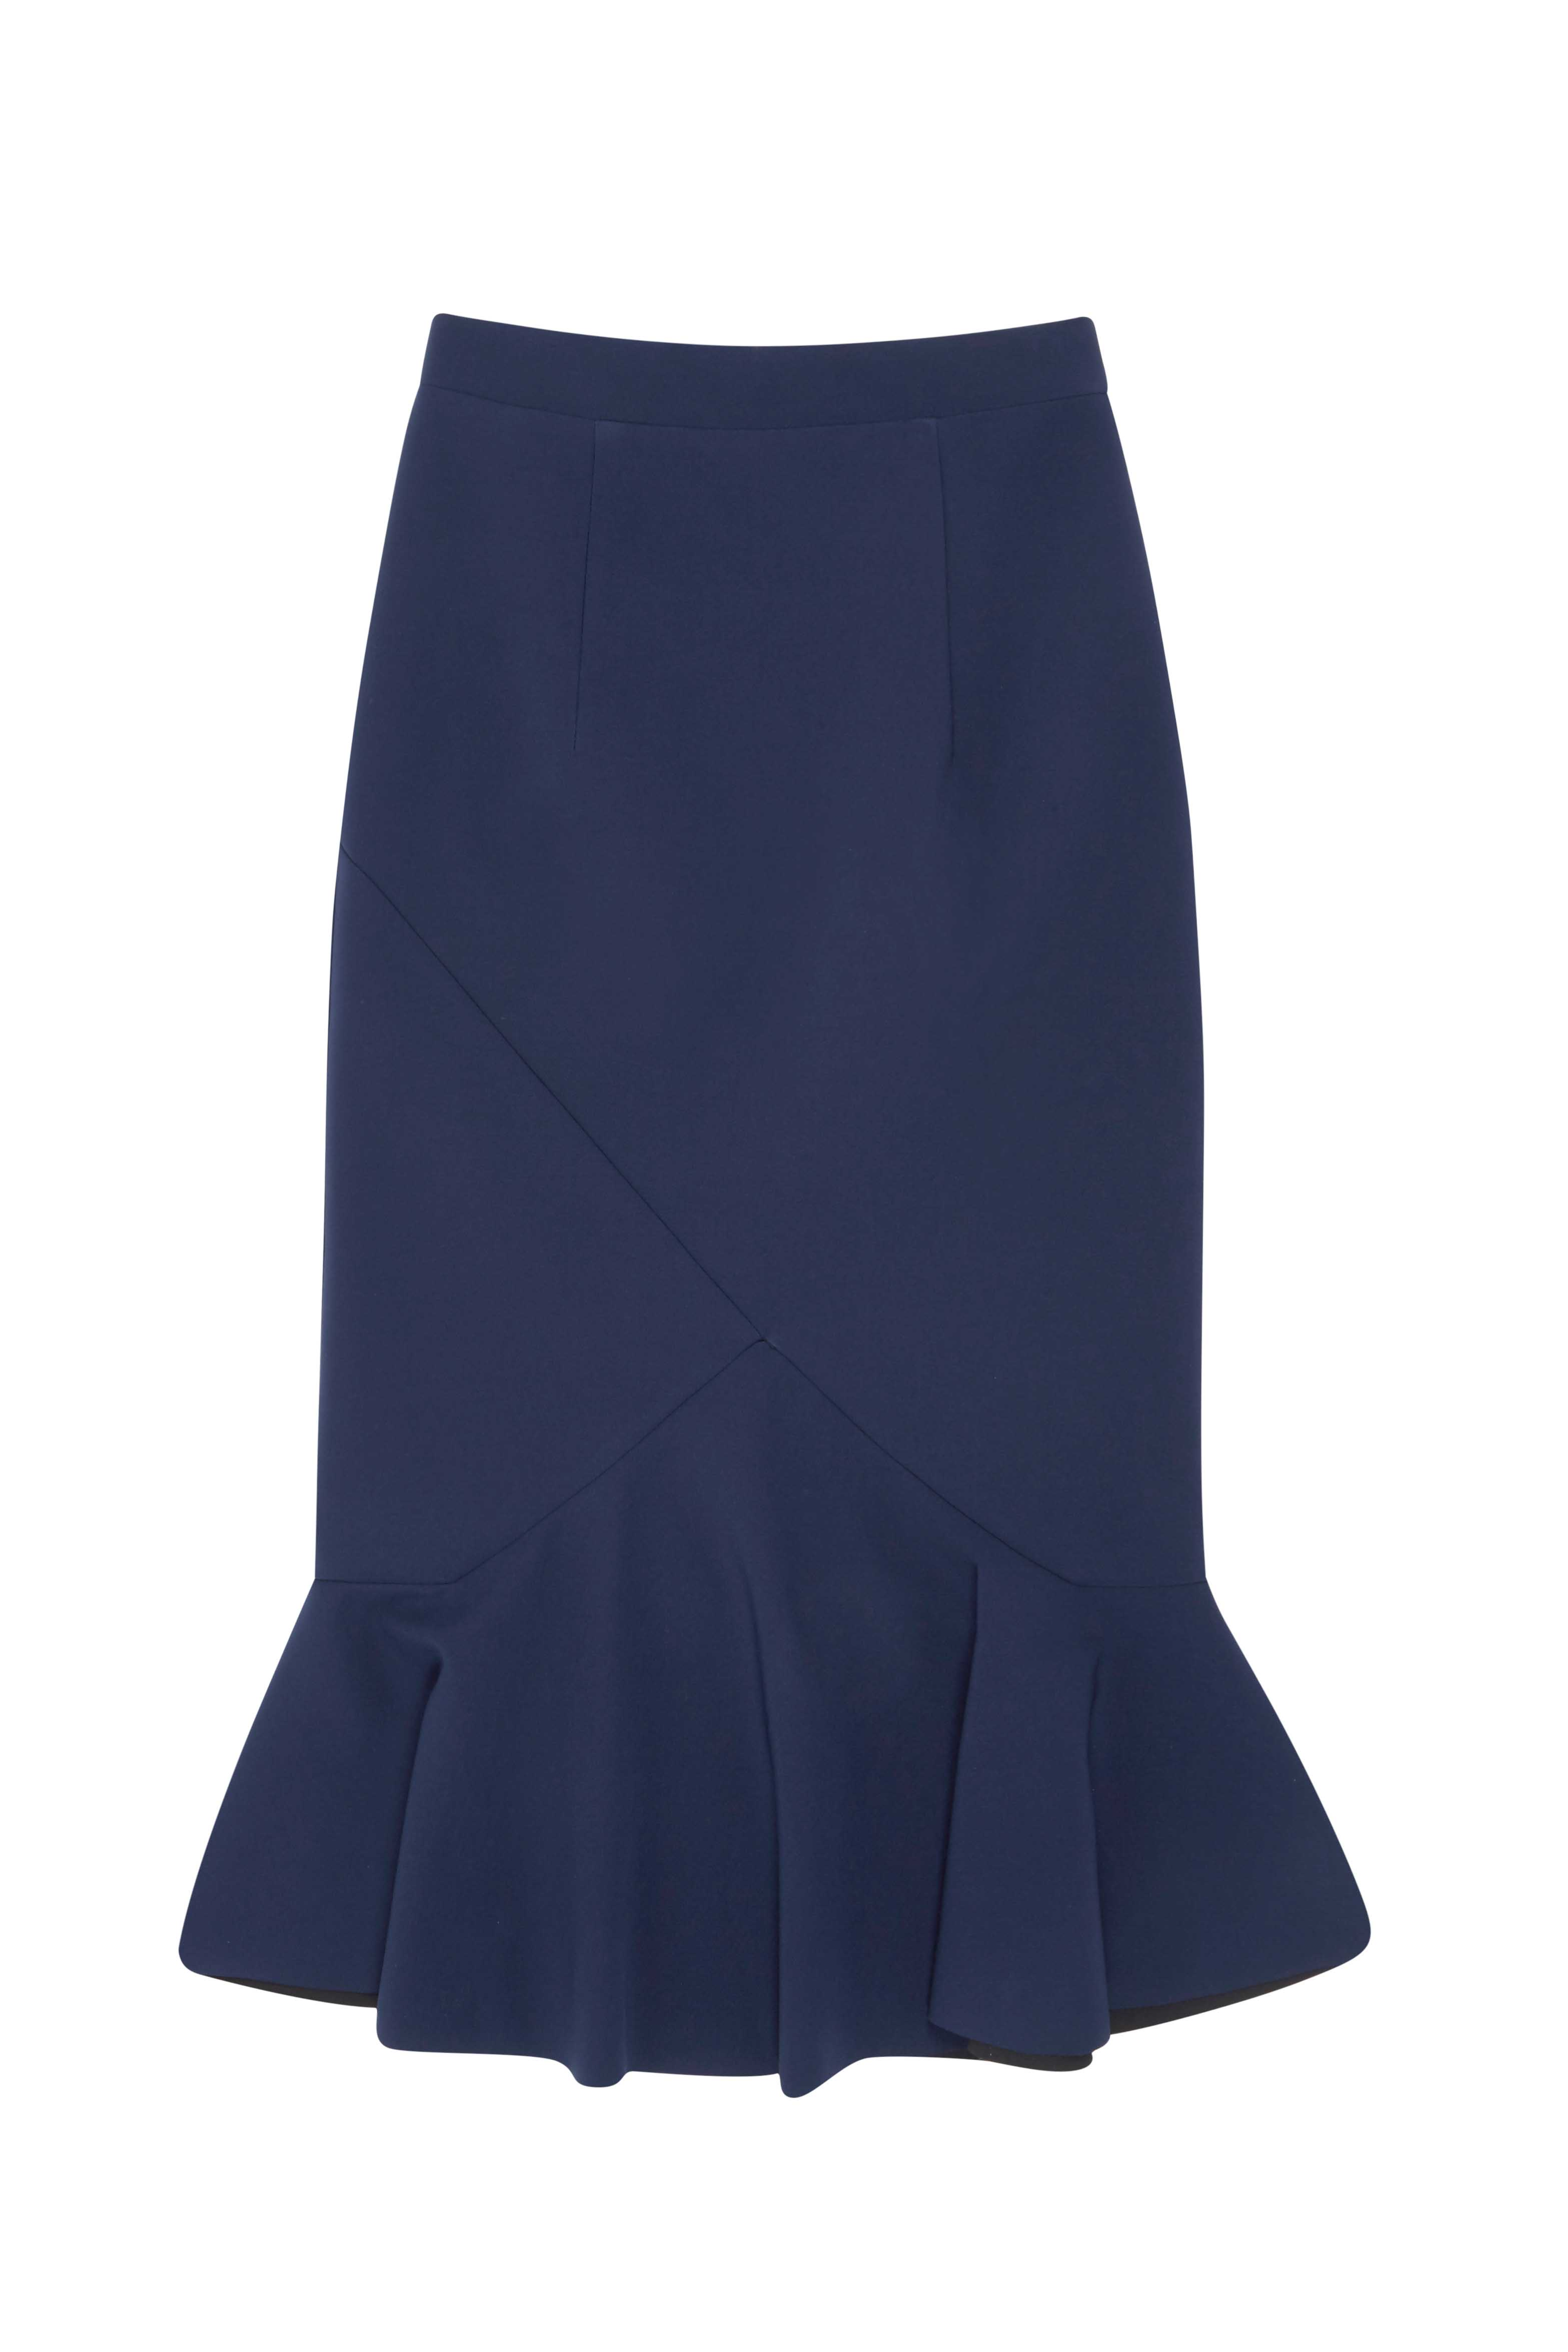 by johnny v flare pencil skirt royal navy